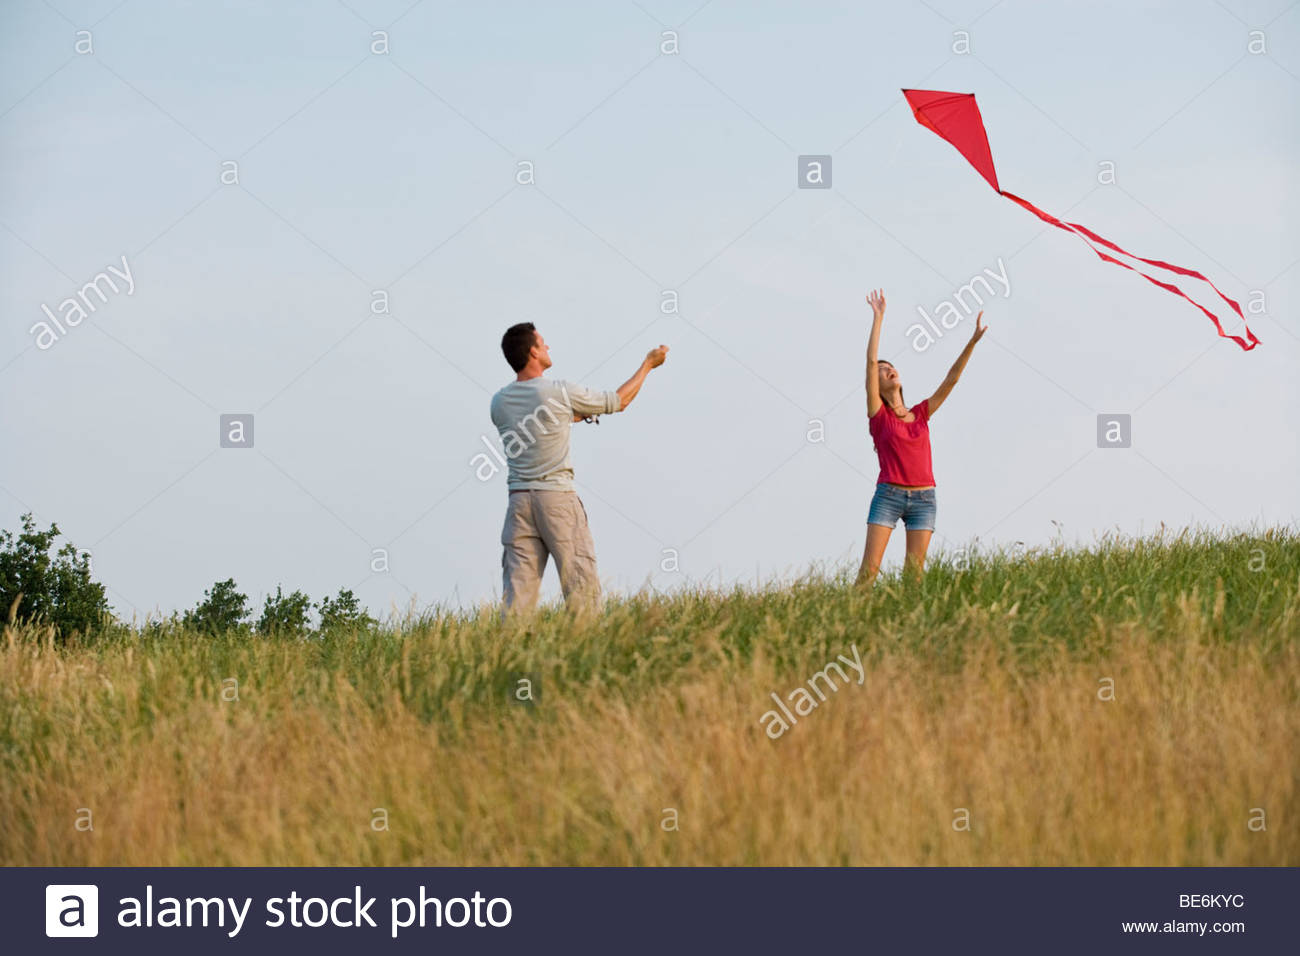 A young couple flying a red kite - Stock Image